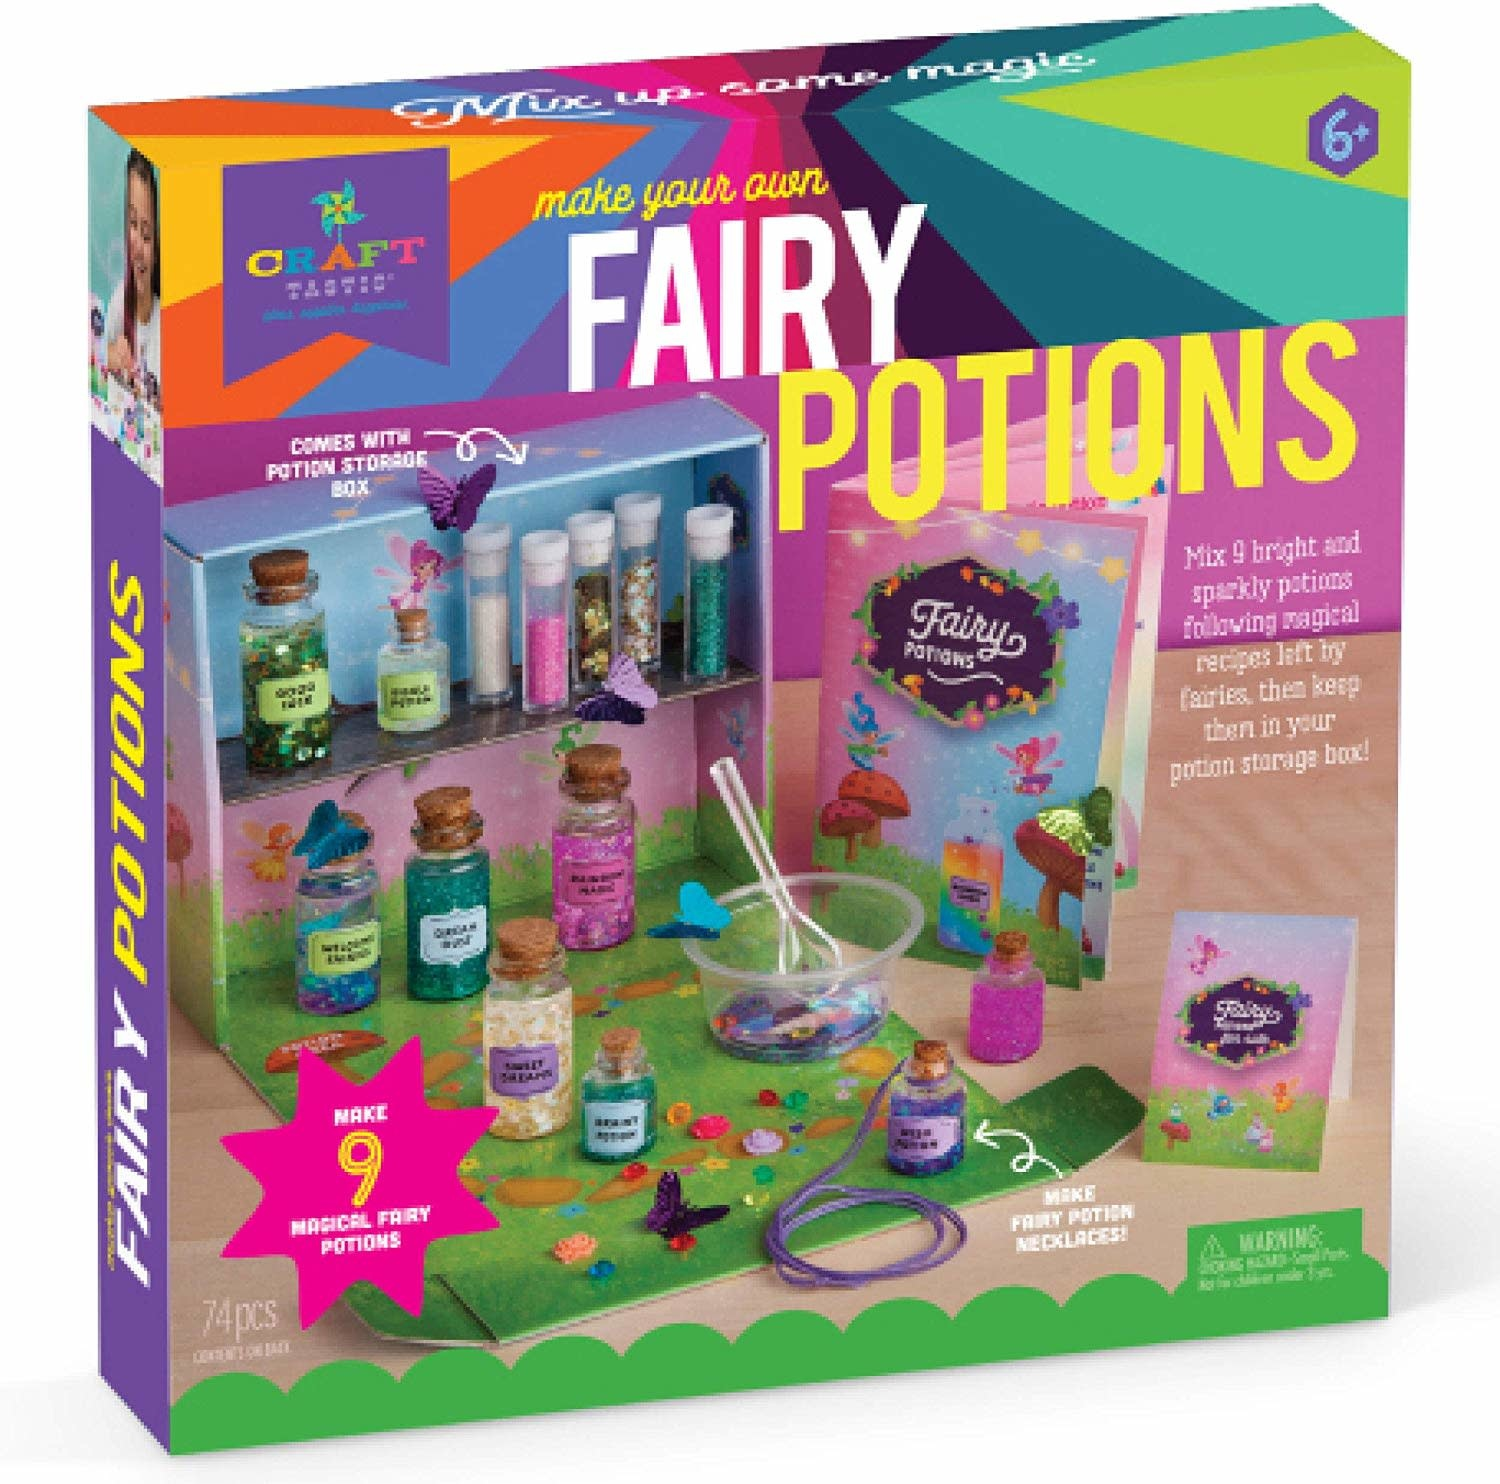 Fairy Potions Kit by Craft-Tastic